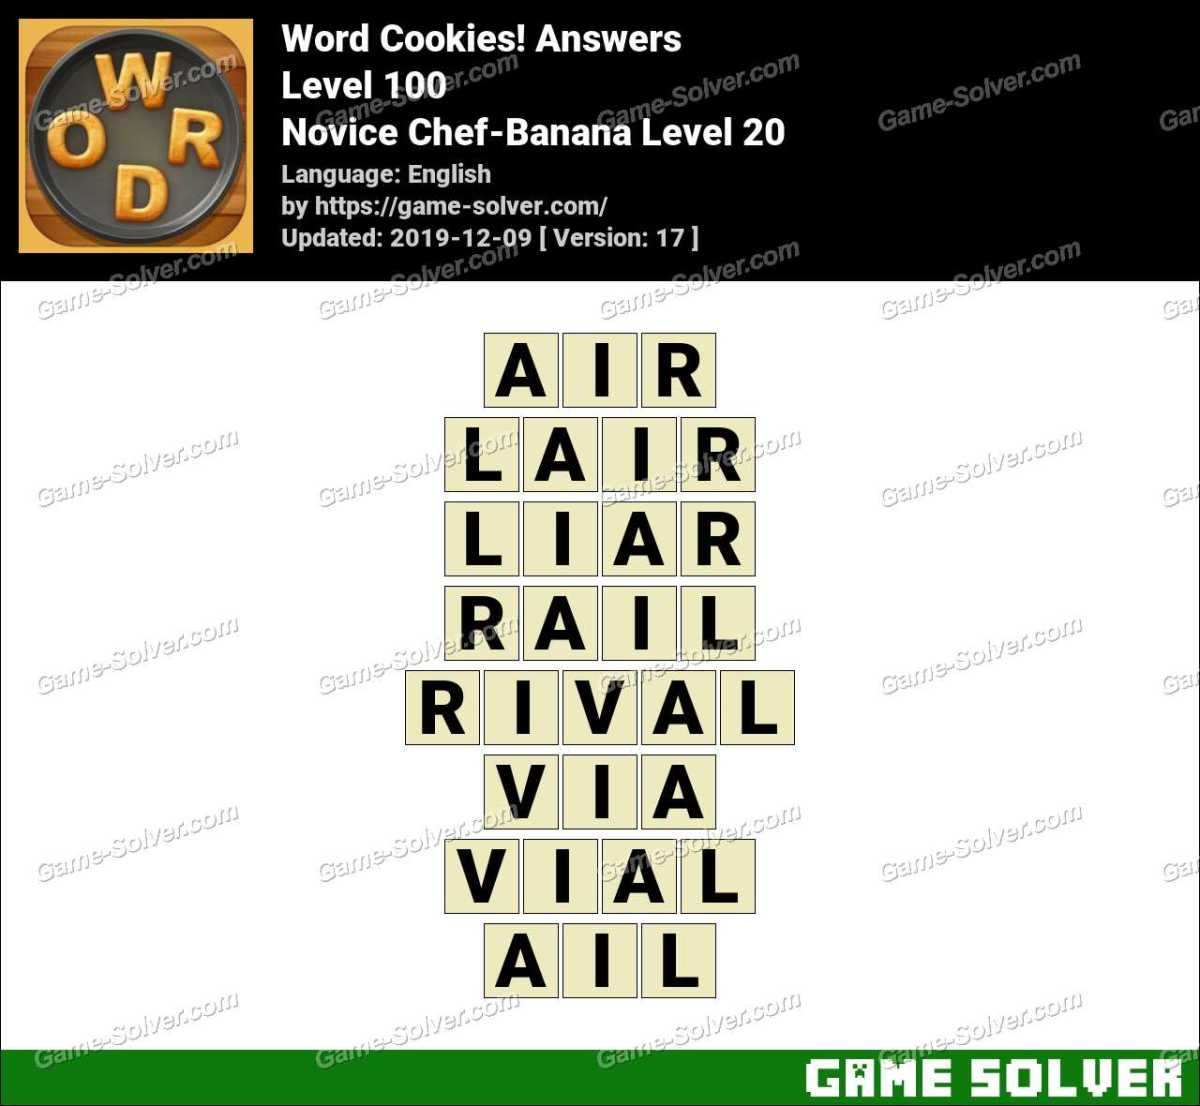 Word Cookies Novice Chef-Banana Level 20 Answers